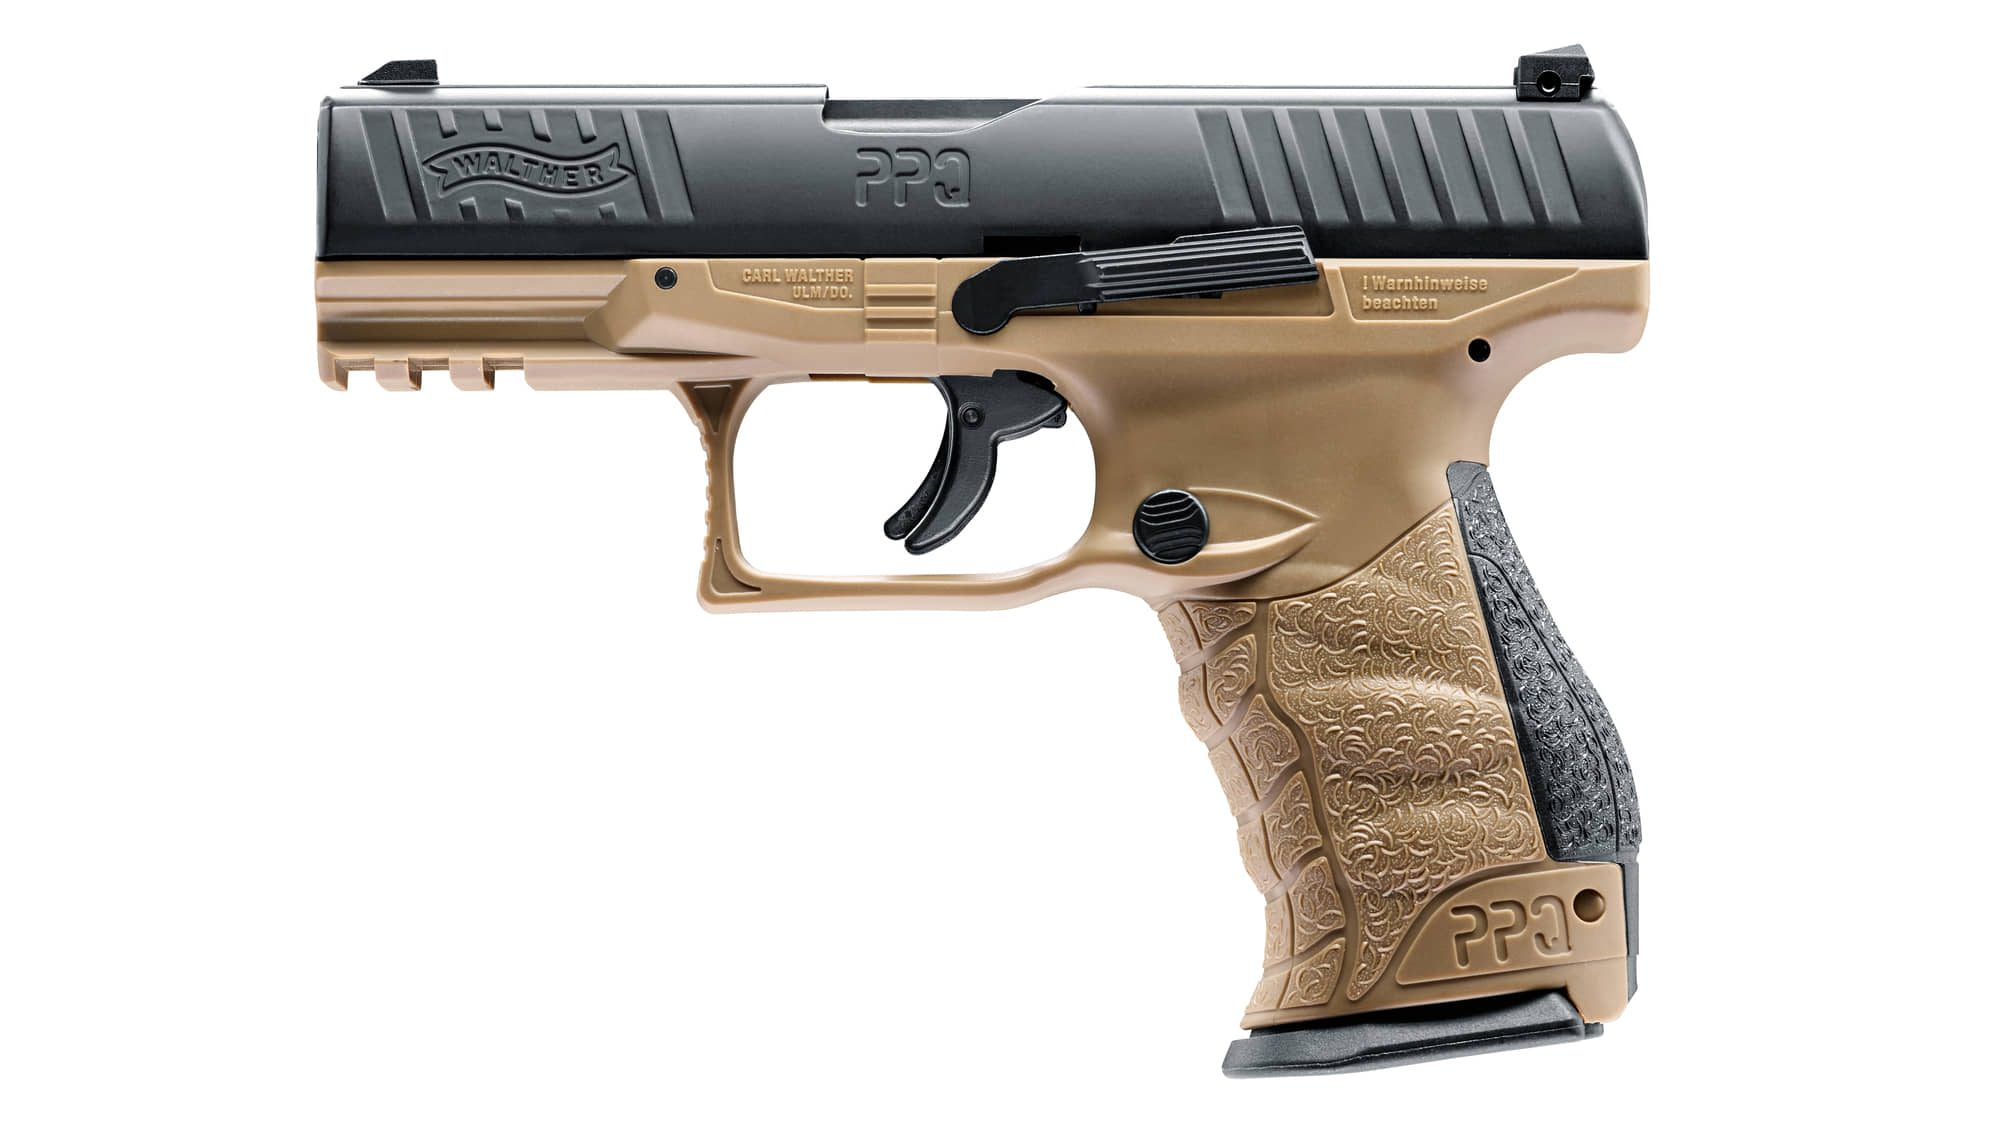 AD822-2-Pistolet CO2 Walther PPQ M2 T4E tan cal. 43 - AD821C